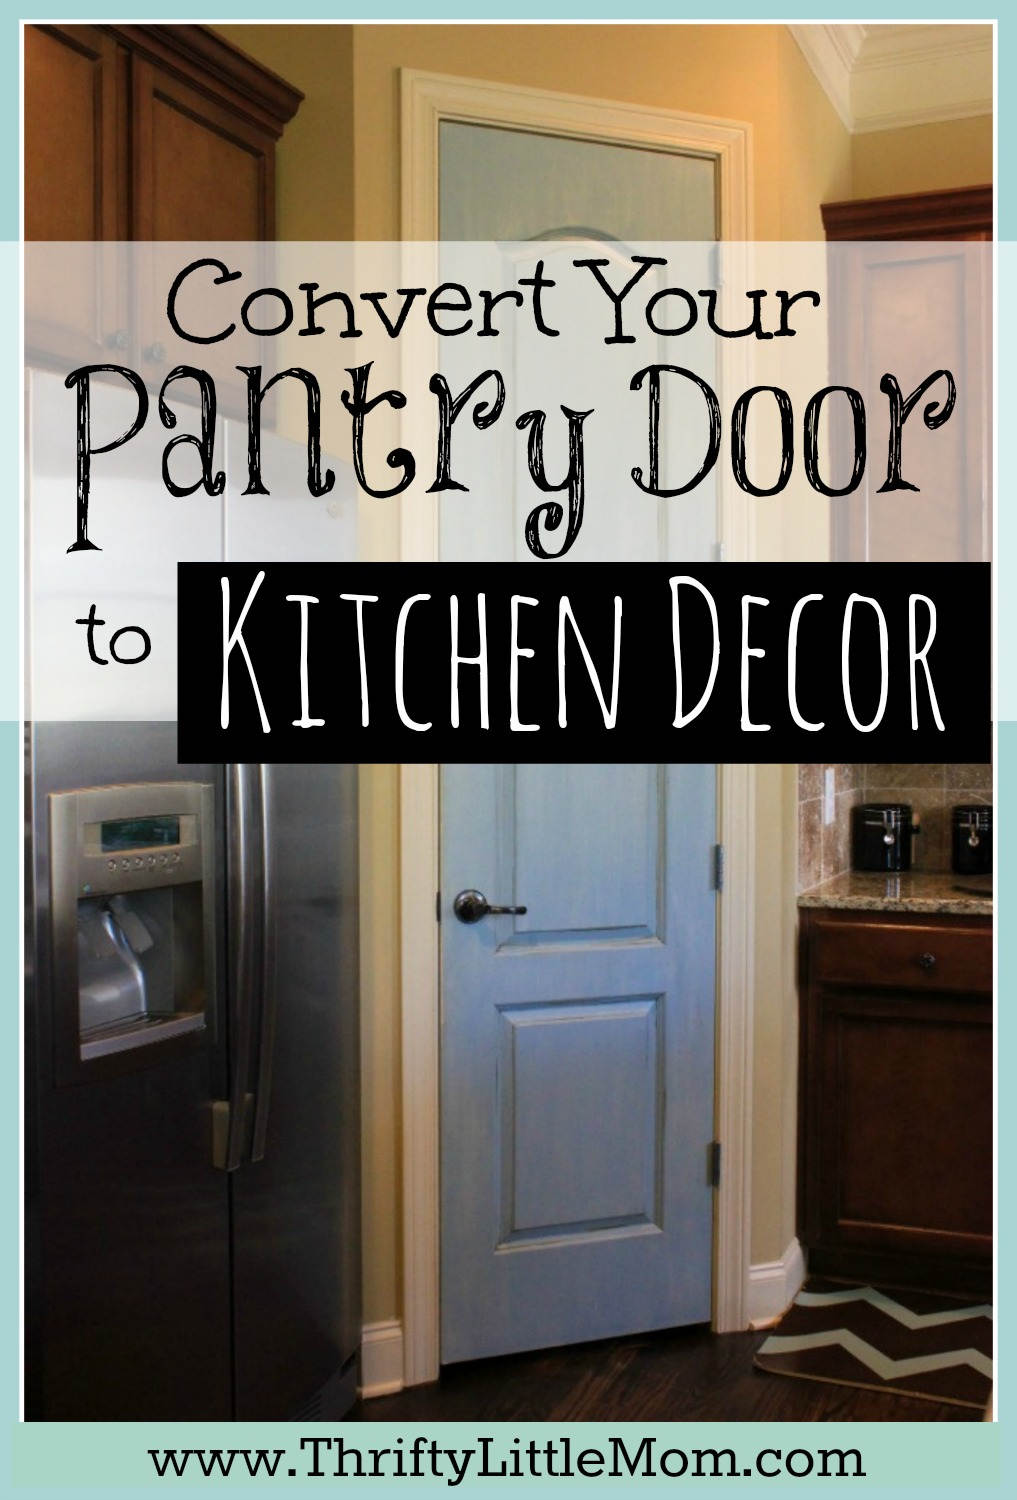 Convert Your Plain Pantry Door Into Kitchen Decor with this simple tutorial